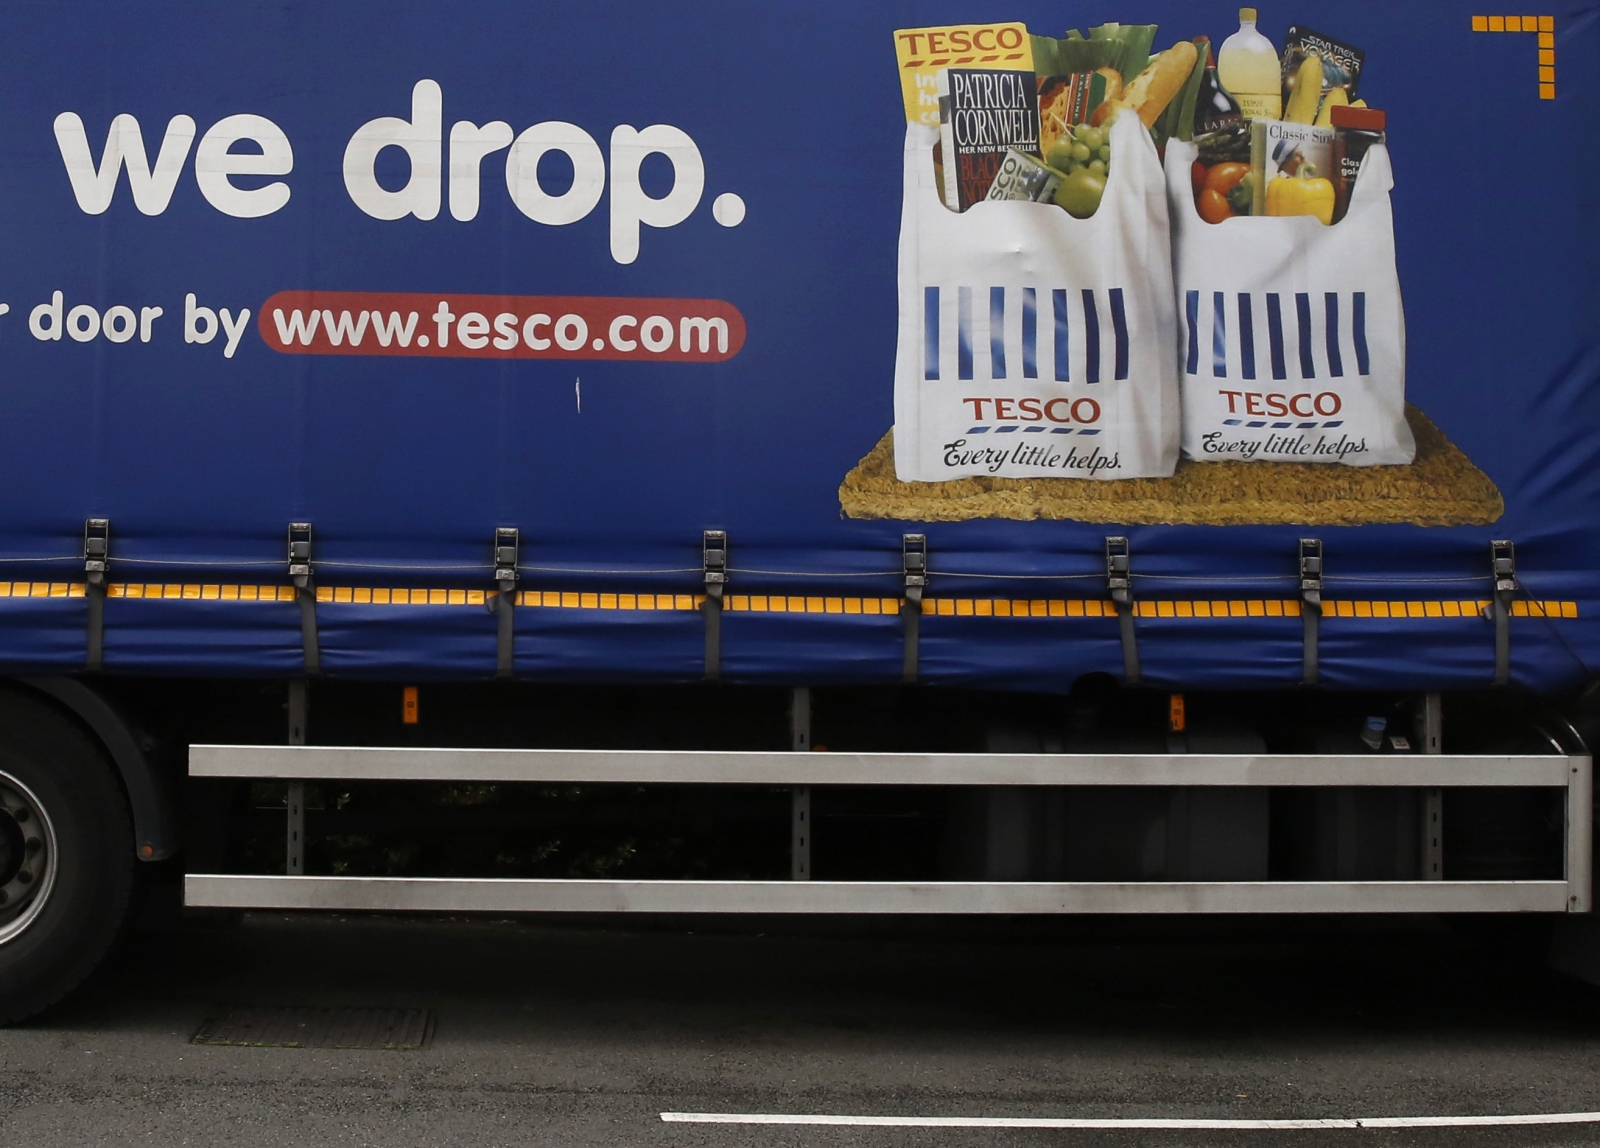 Part of a slogan is pictured on the side of a Tesco supermarket delivery truck in New Malden southwest London June 4, 2014.